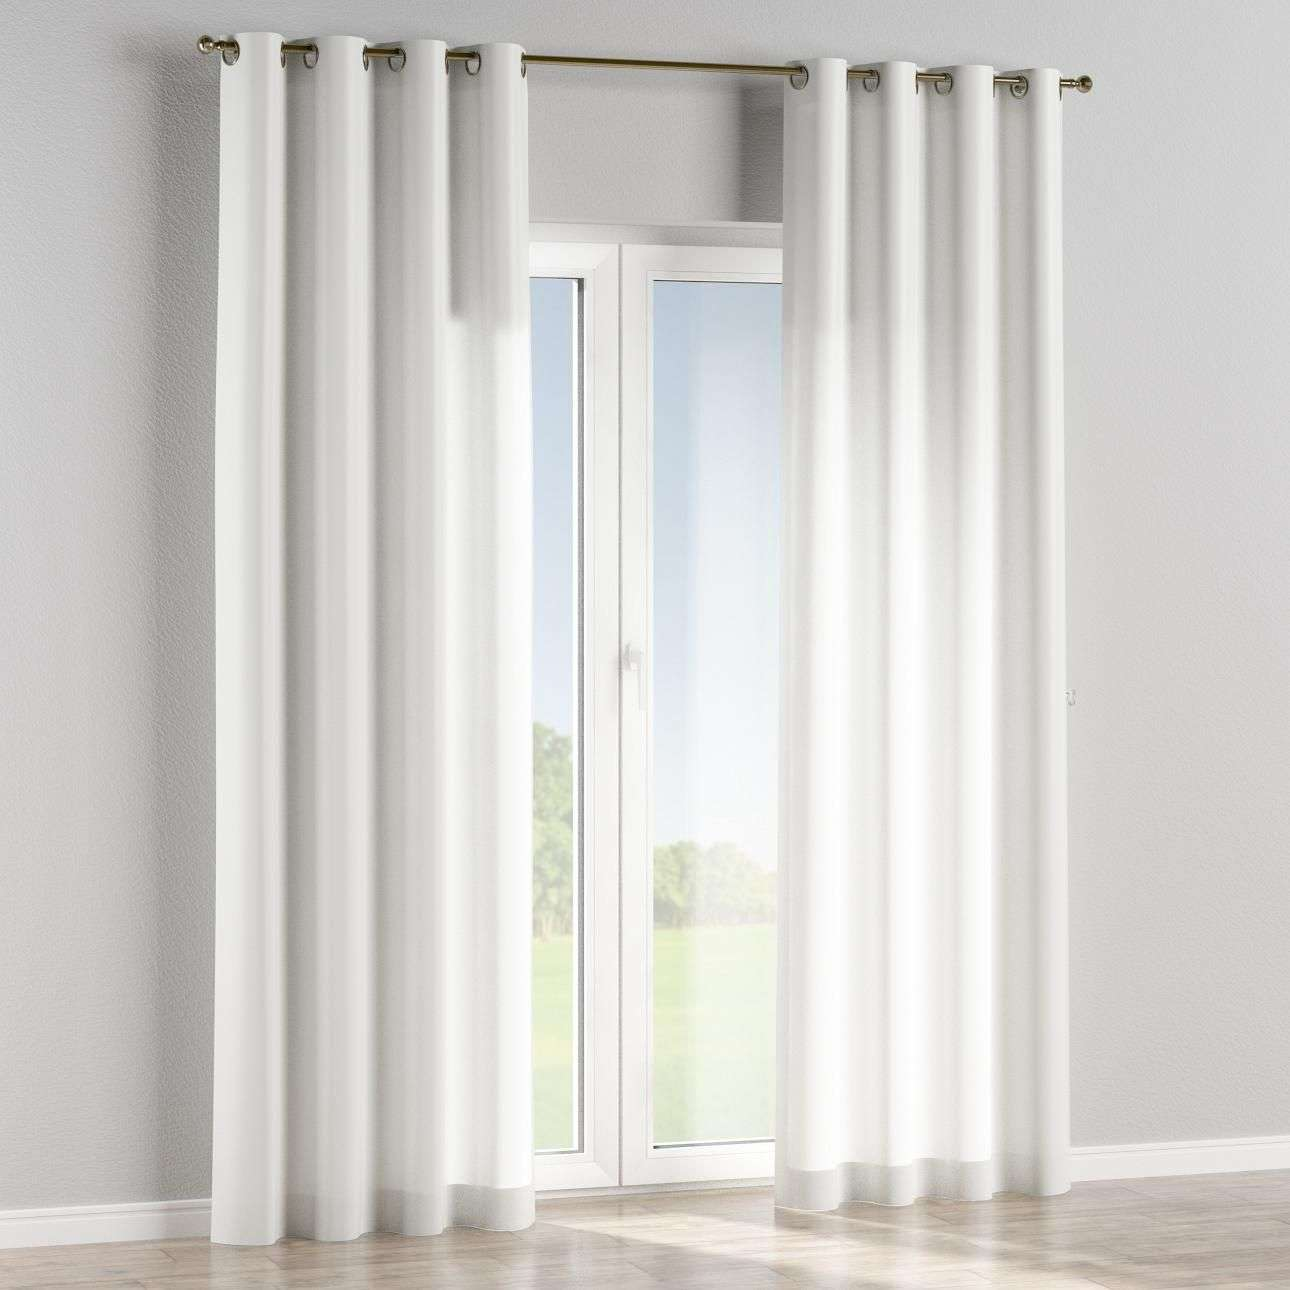 Eyelet lined curtains in collection Odisea, fabric: 412-53